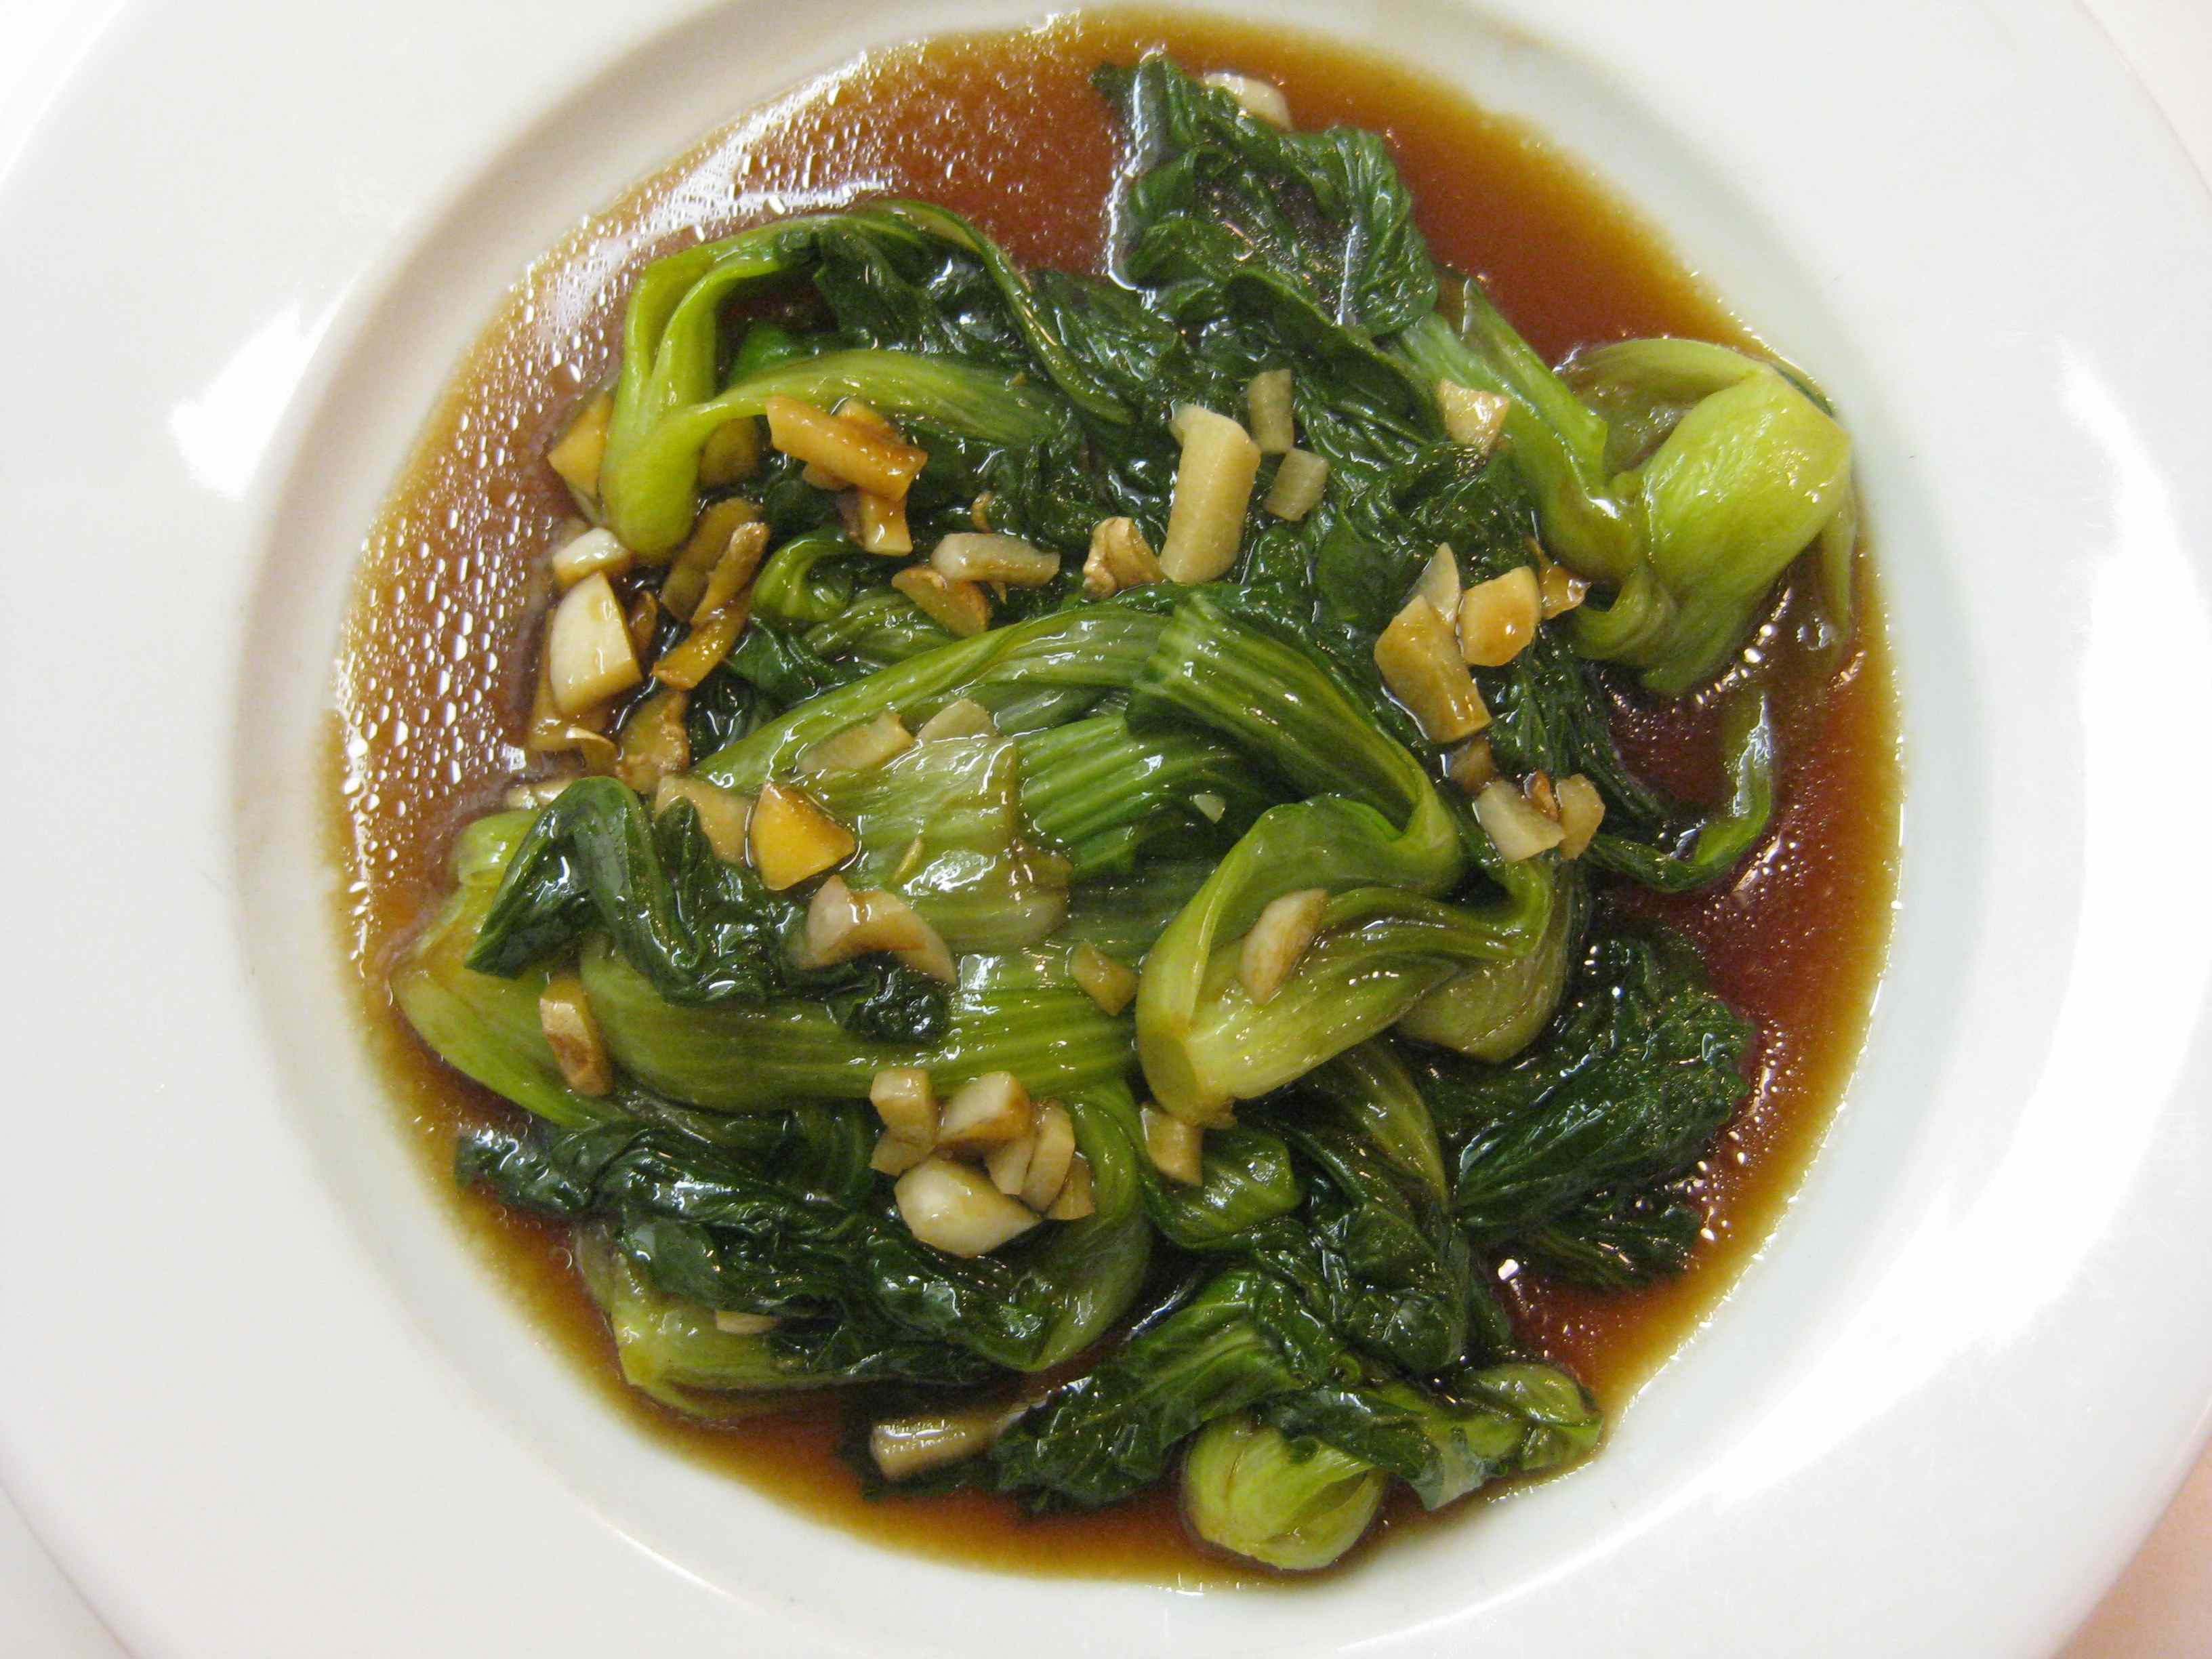 ... baby bok choy with tofu shiitakes baby bok choy with yellow bell